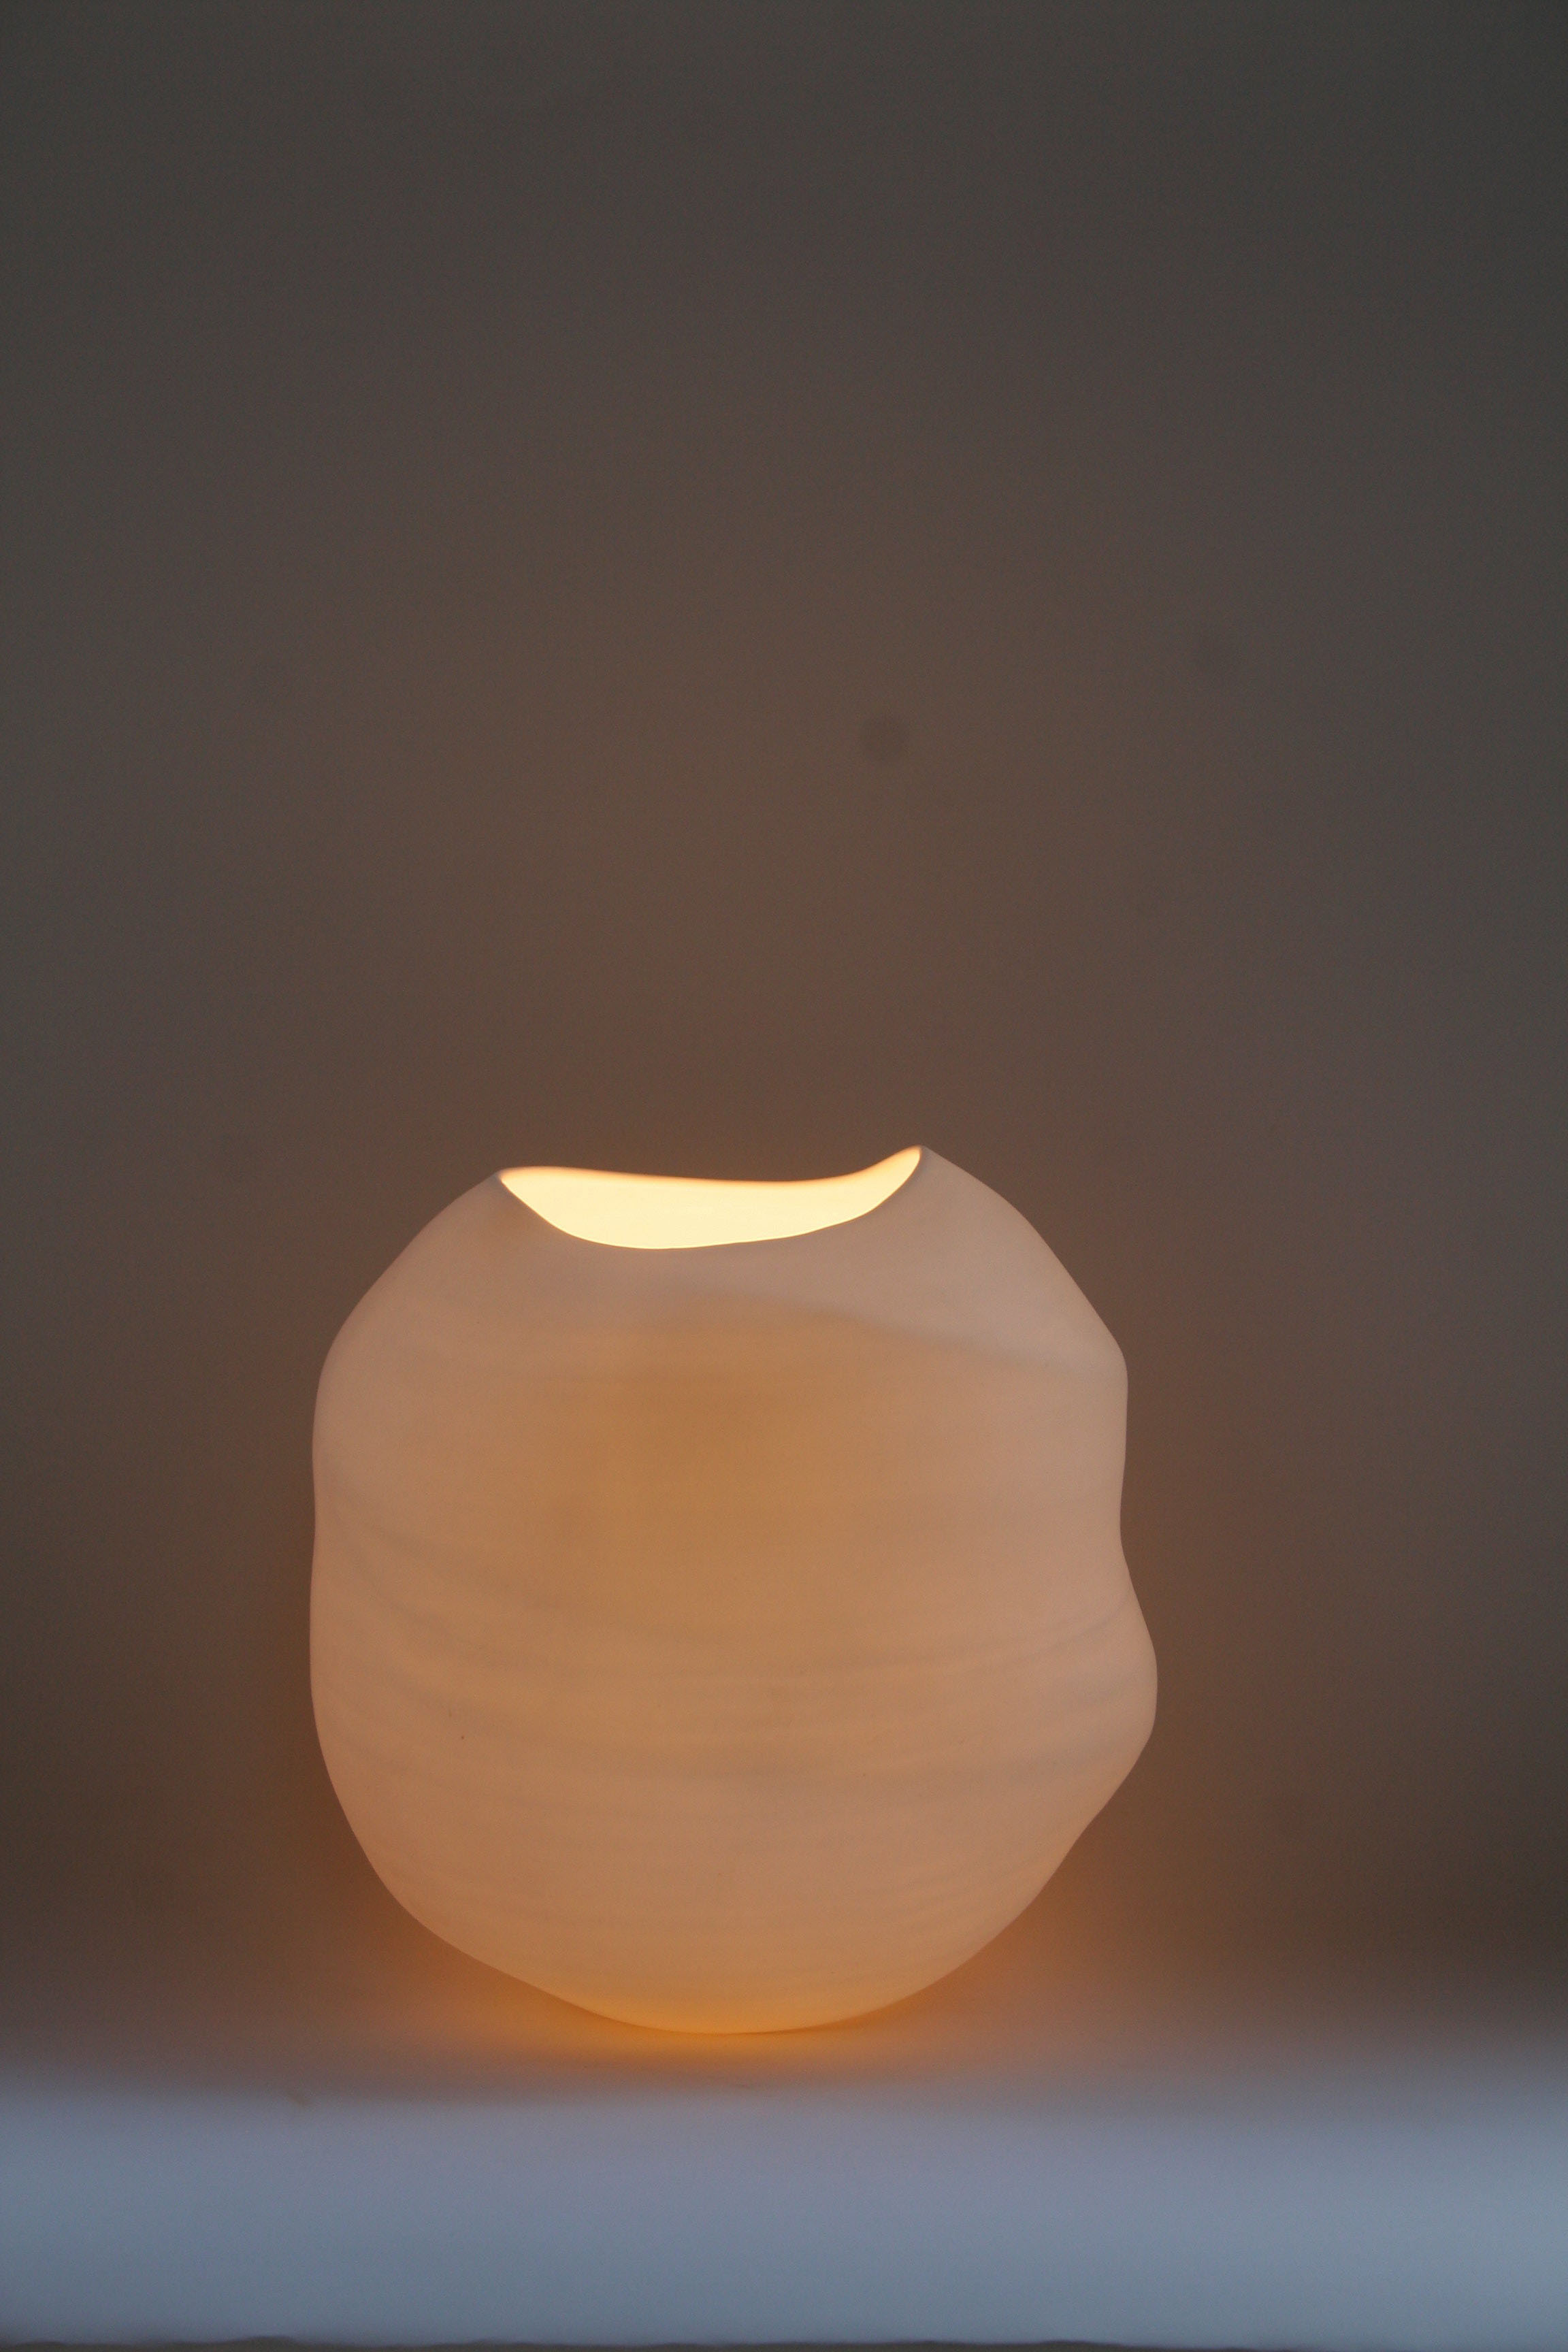 8. Cast Free standing Moon Bowl.